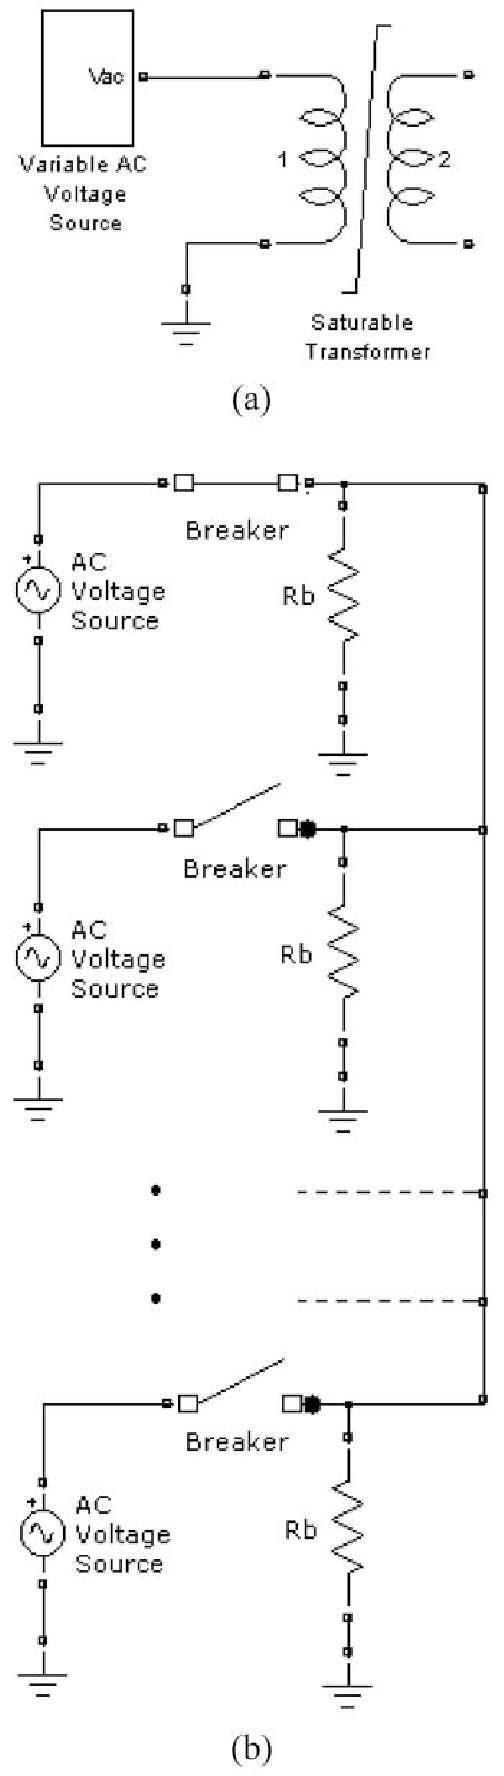 medium resolution of  a new variable ac voltage source providing input to transformer model and